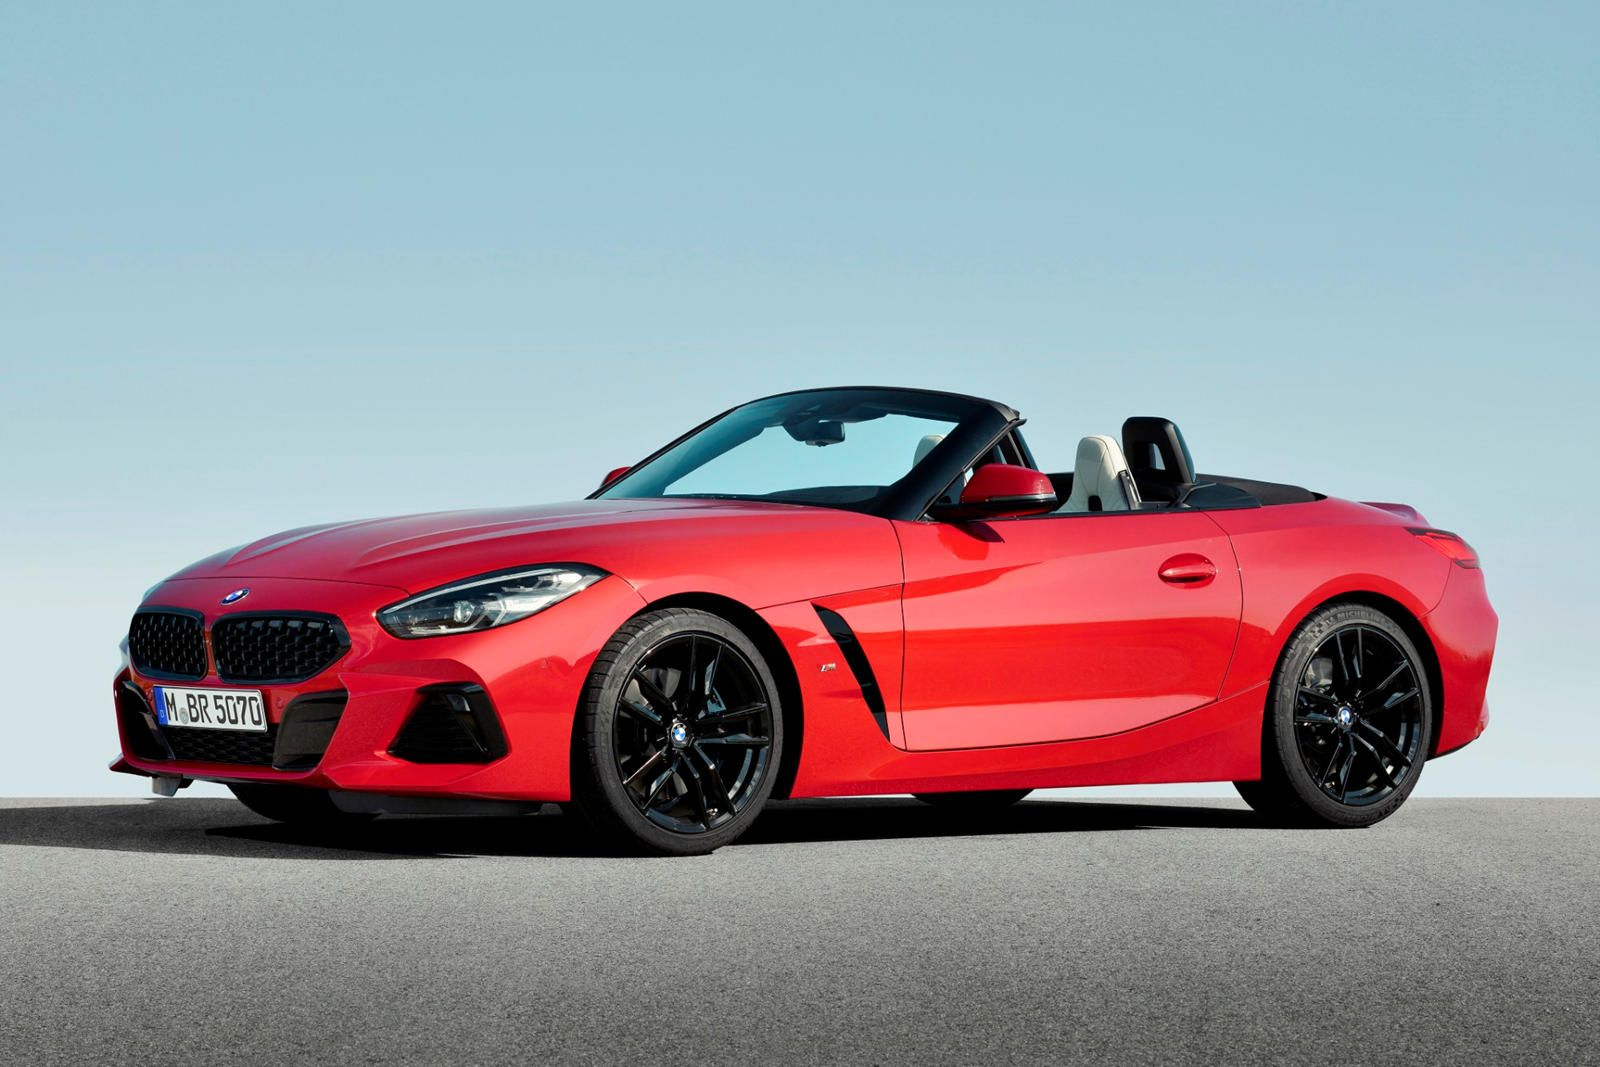 Check Out The New Bmw Z4 Roadster Test Drive Review Price Details Trims And Specs Overview Interior Features Exteri In 2020 Bmw Z4 Bmw Z4 Roadster Bmw